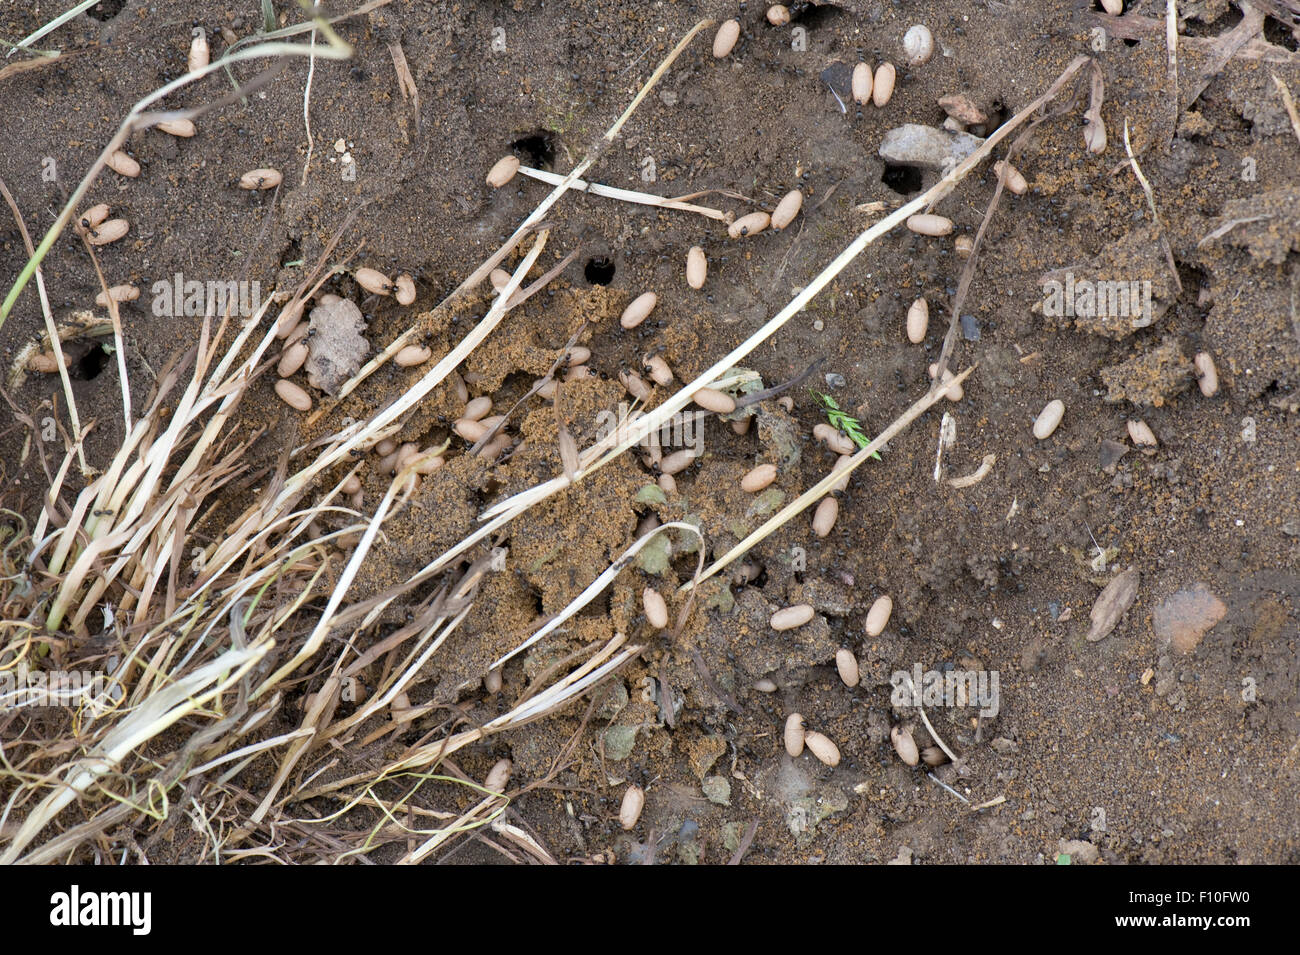 Exposed colony of black garden ants, Lasius niger, with pupae of flying drones and immature queens, June - Stock Image